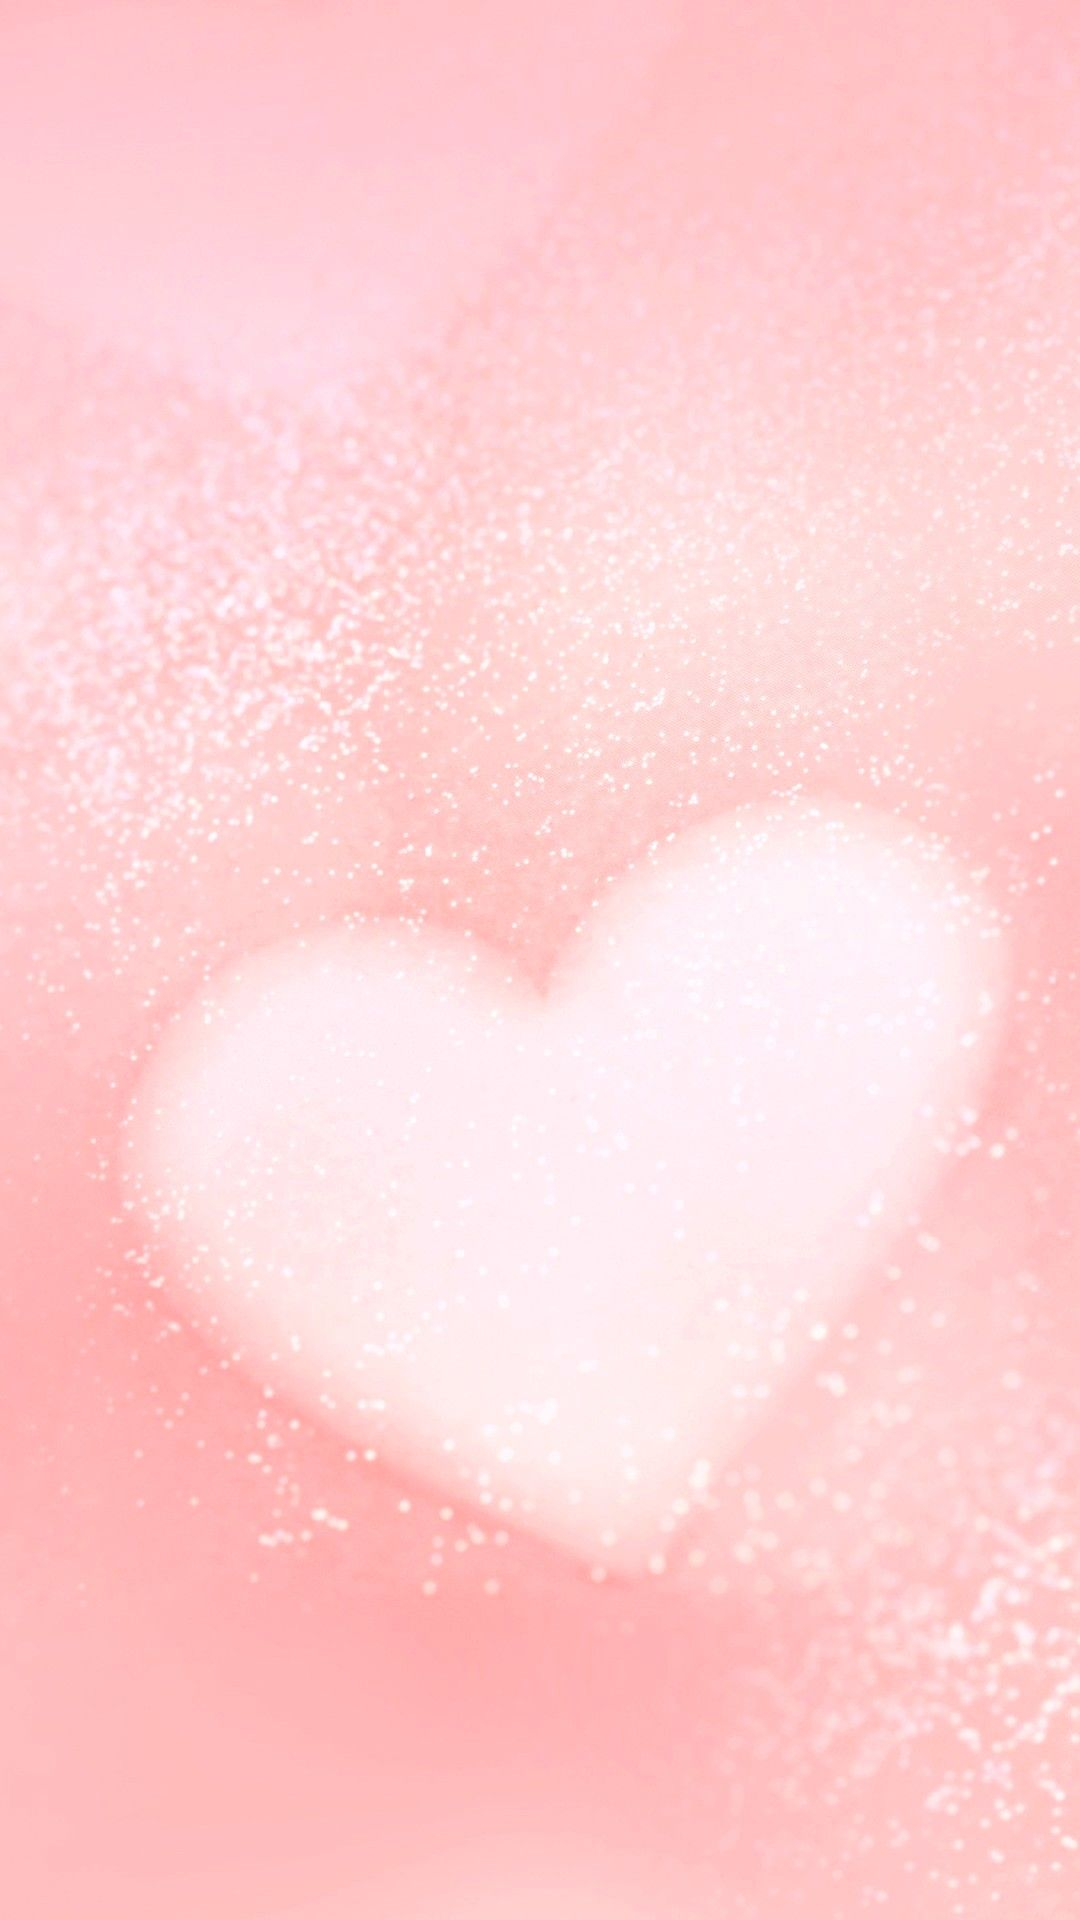 Pink Girly Heart Xiaomi Redmi Note 9 Pro Max Love Wallpapers Love Wallpaper Simple Iphone Wallpaper Iphone Wallpaper